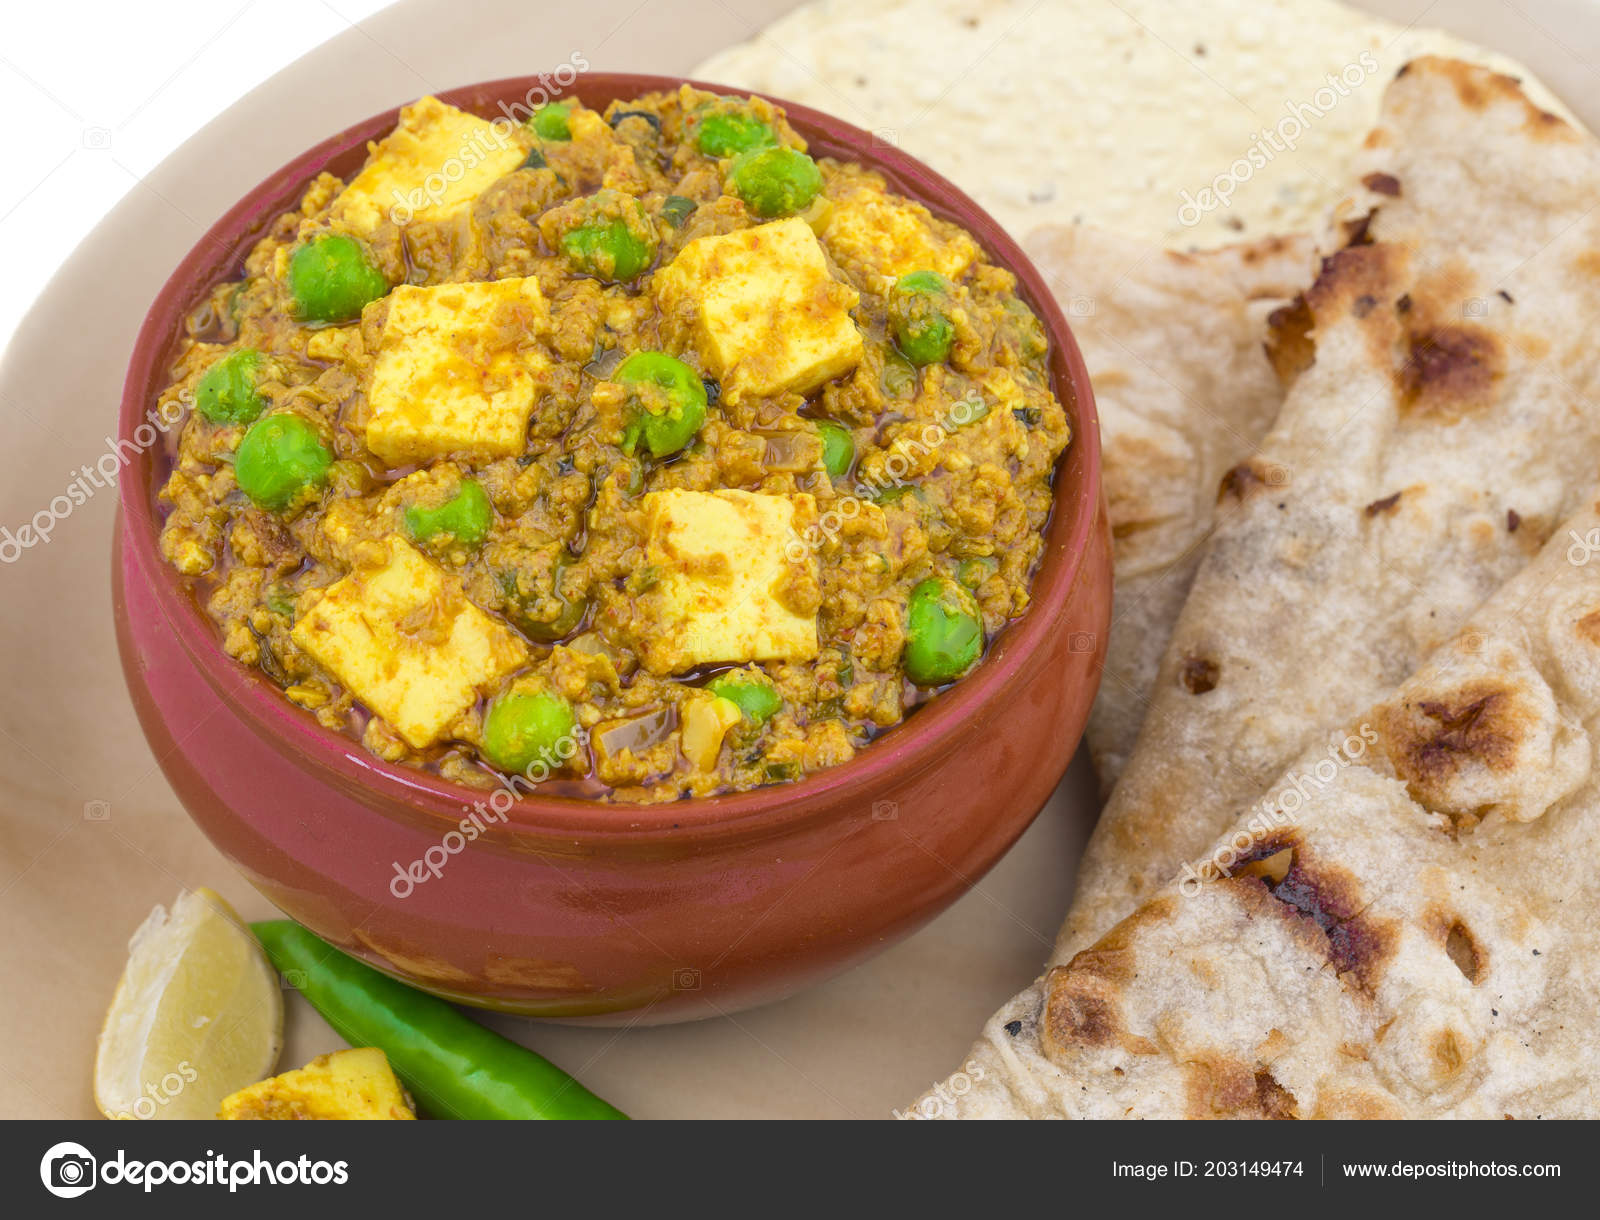 Cuisines Similar To Indian Indian Cuisine Mattar Paneer Vegetarian North Indian Dish